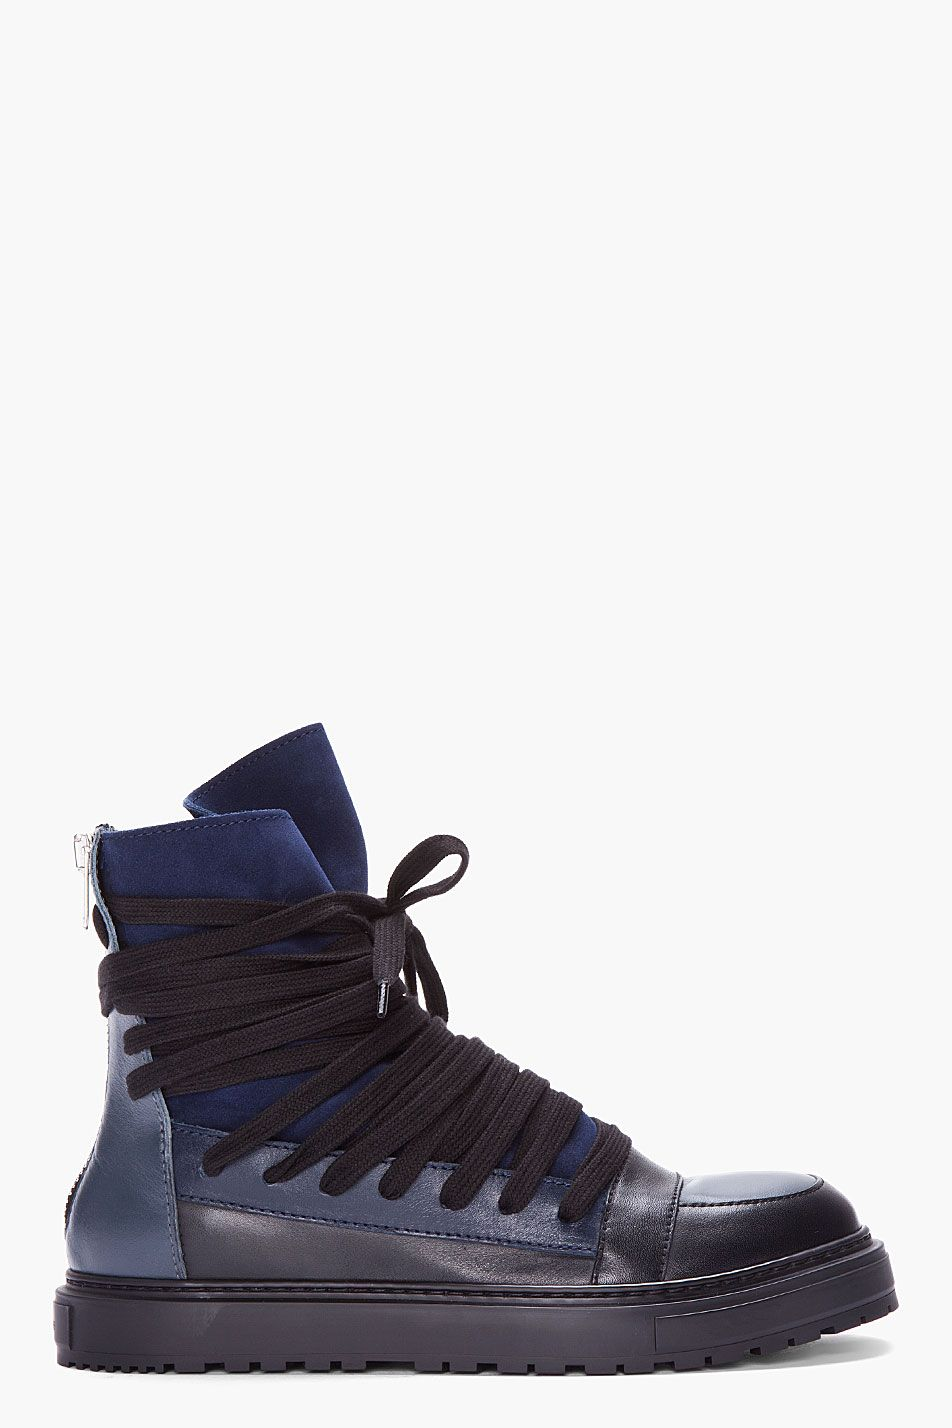 competitive price 984a8 6cf3b Kris Van Assche | Blue Leather Cinched High-top Sneakers ...